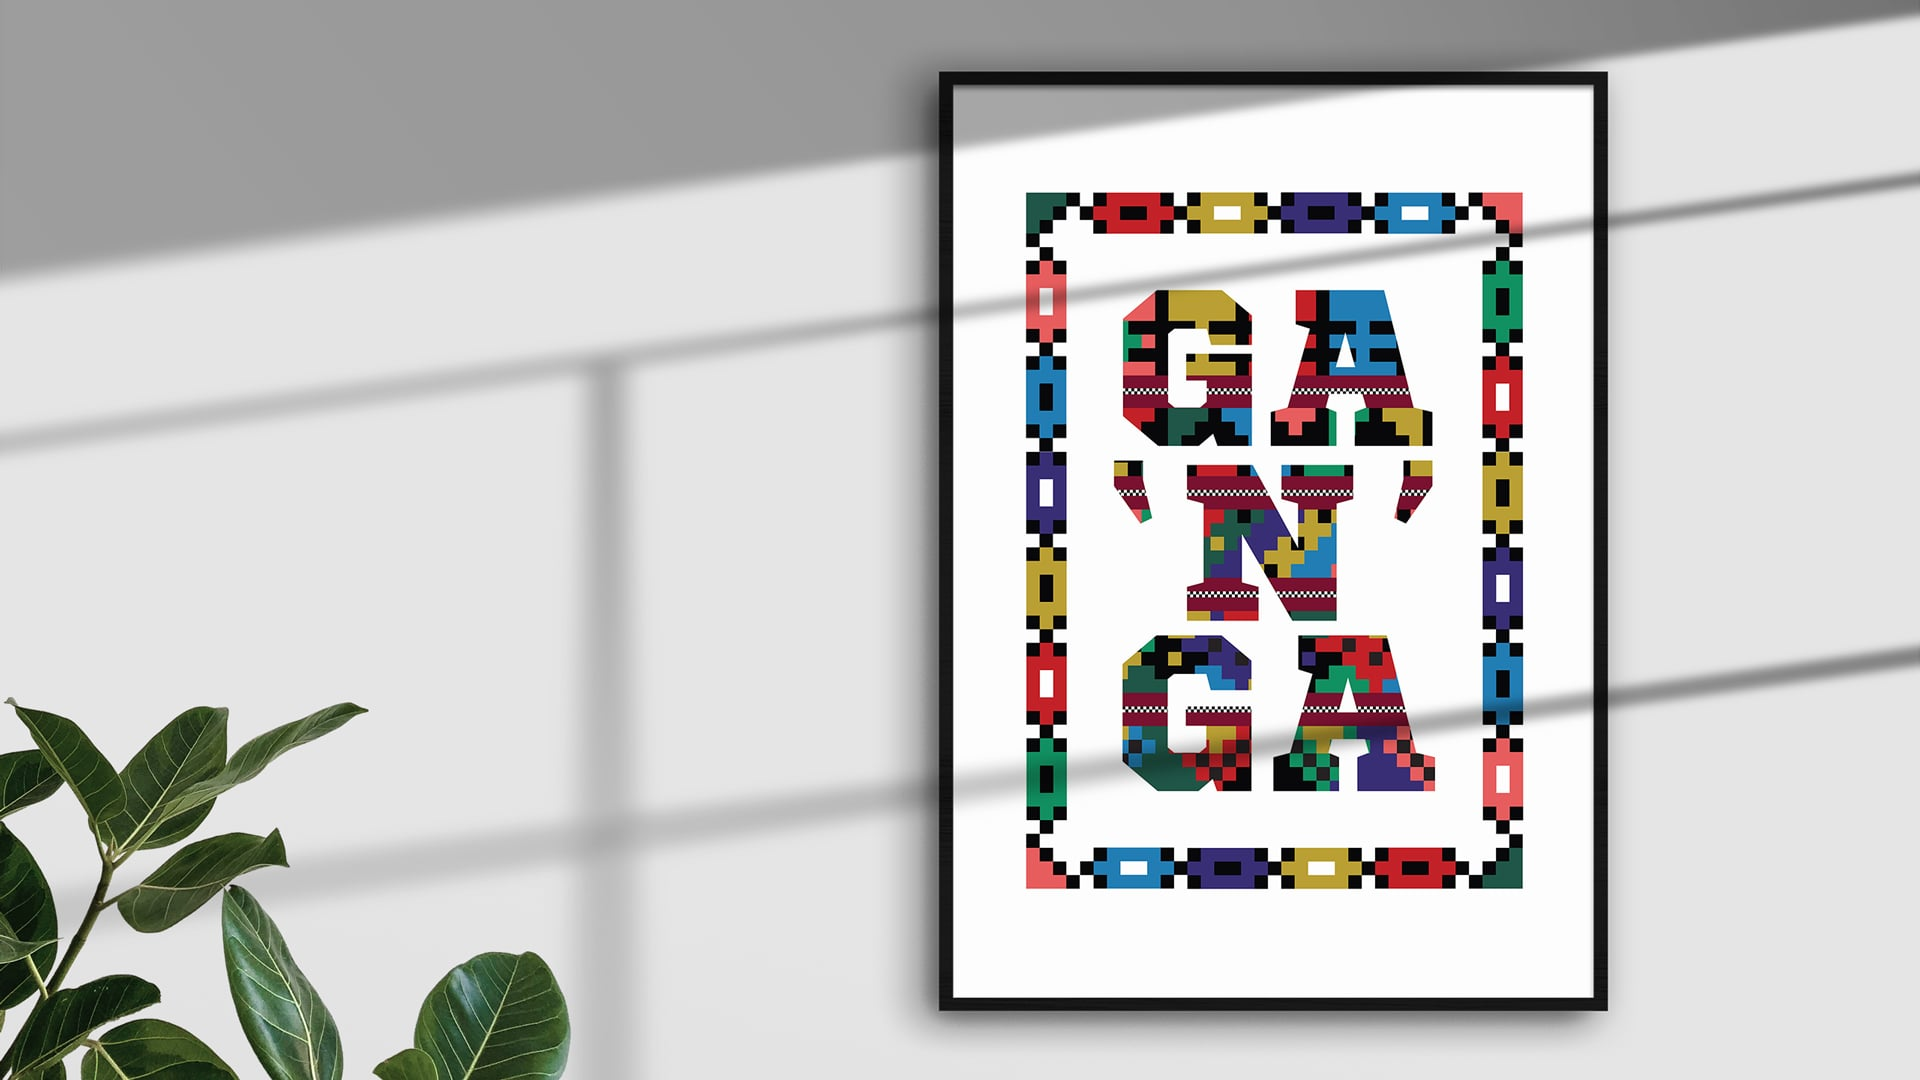 Ganga-Poster-by-Emtisquare-and-Miro-Tomic